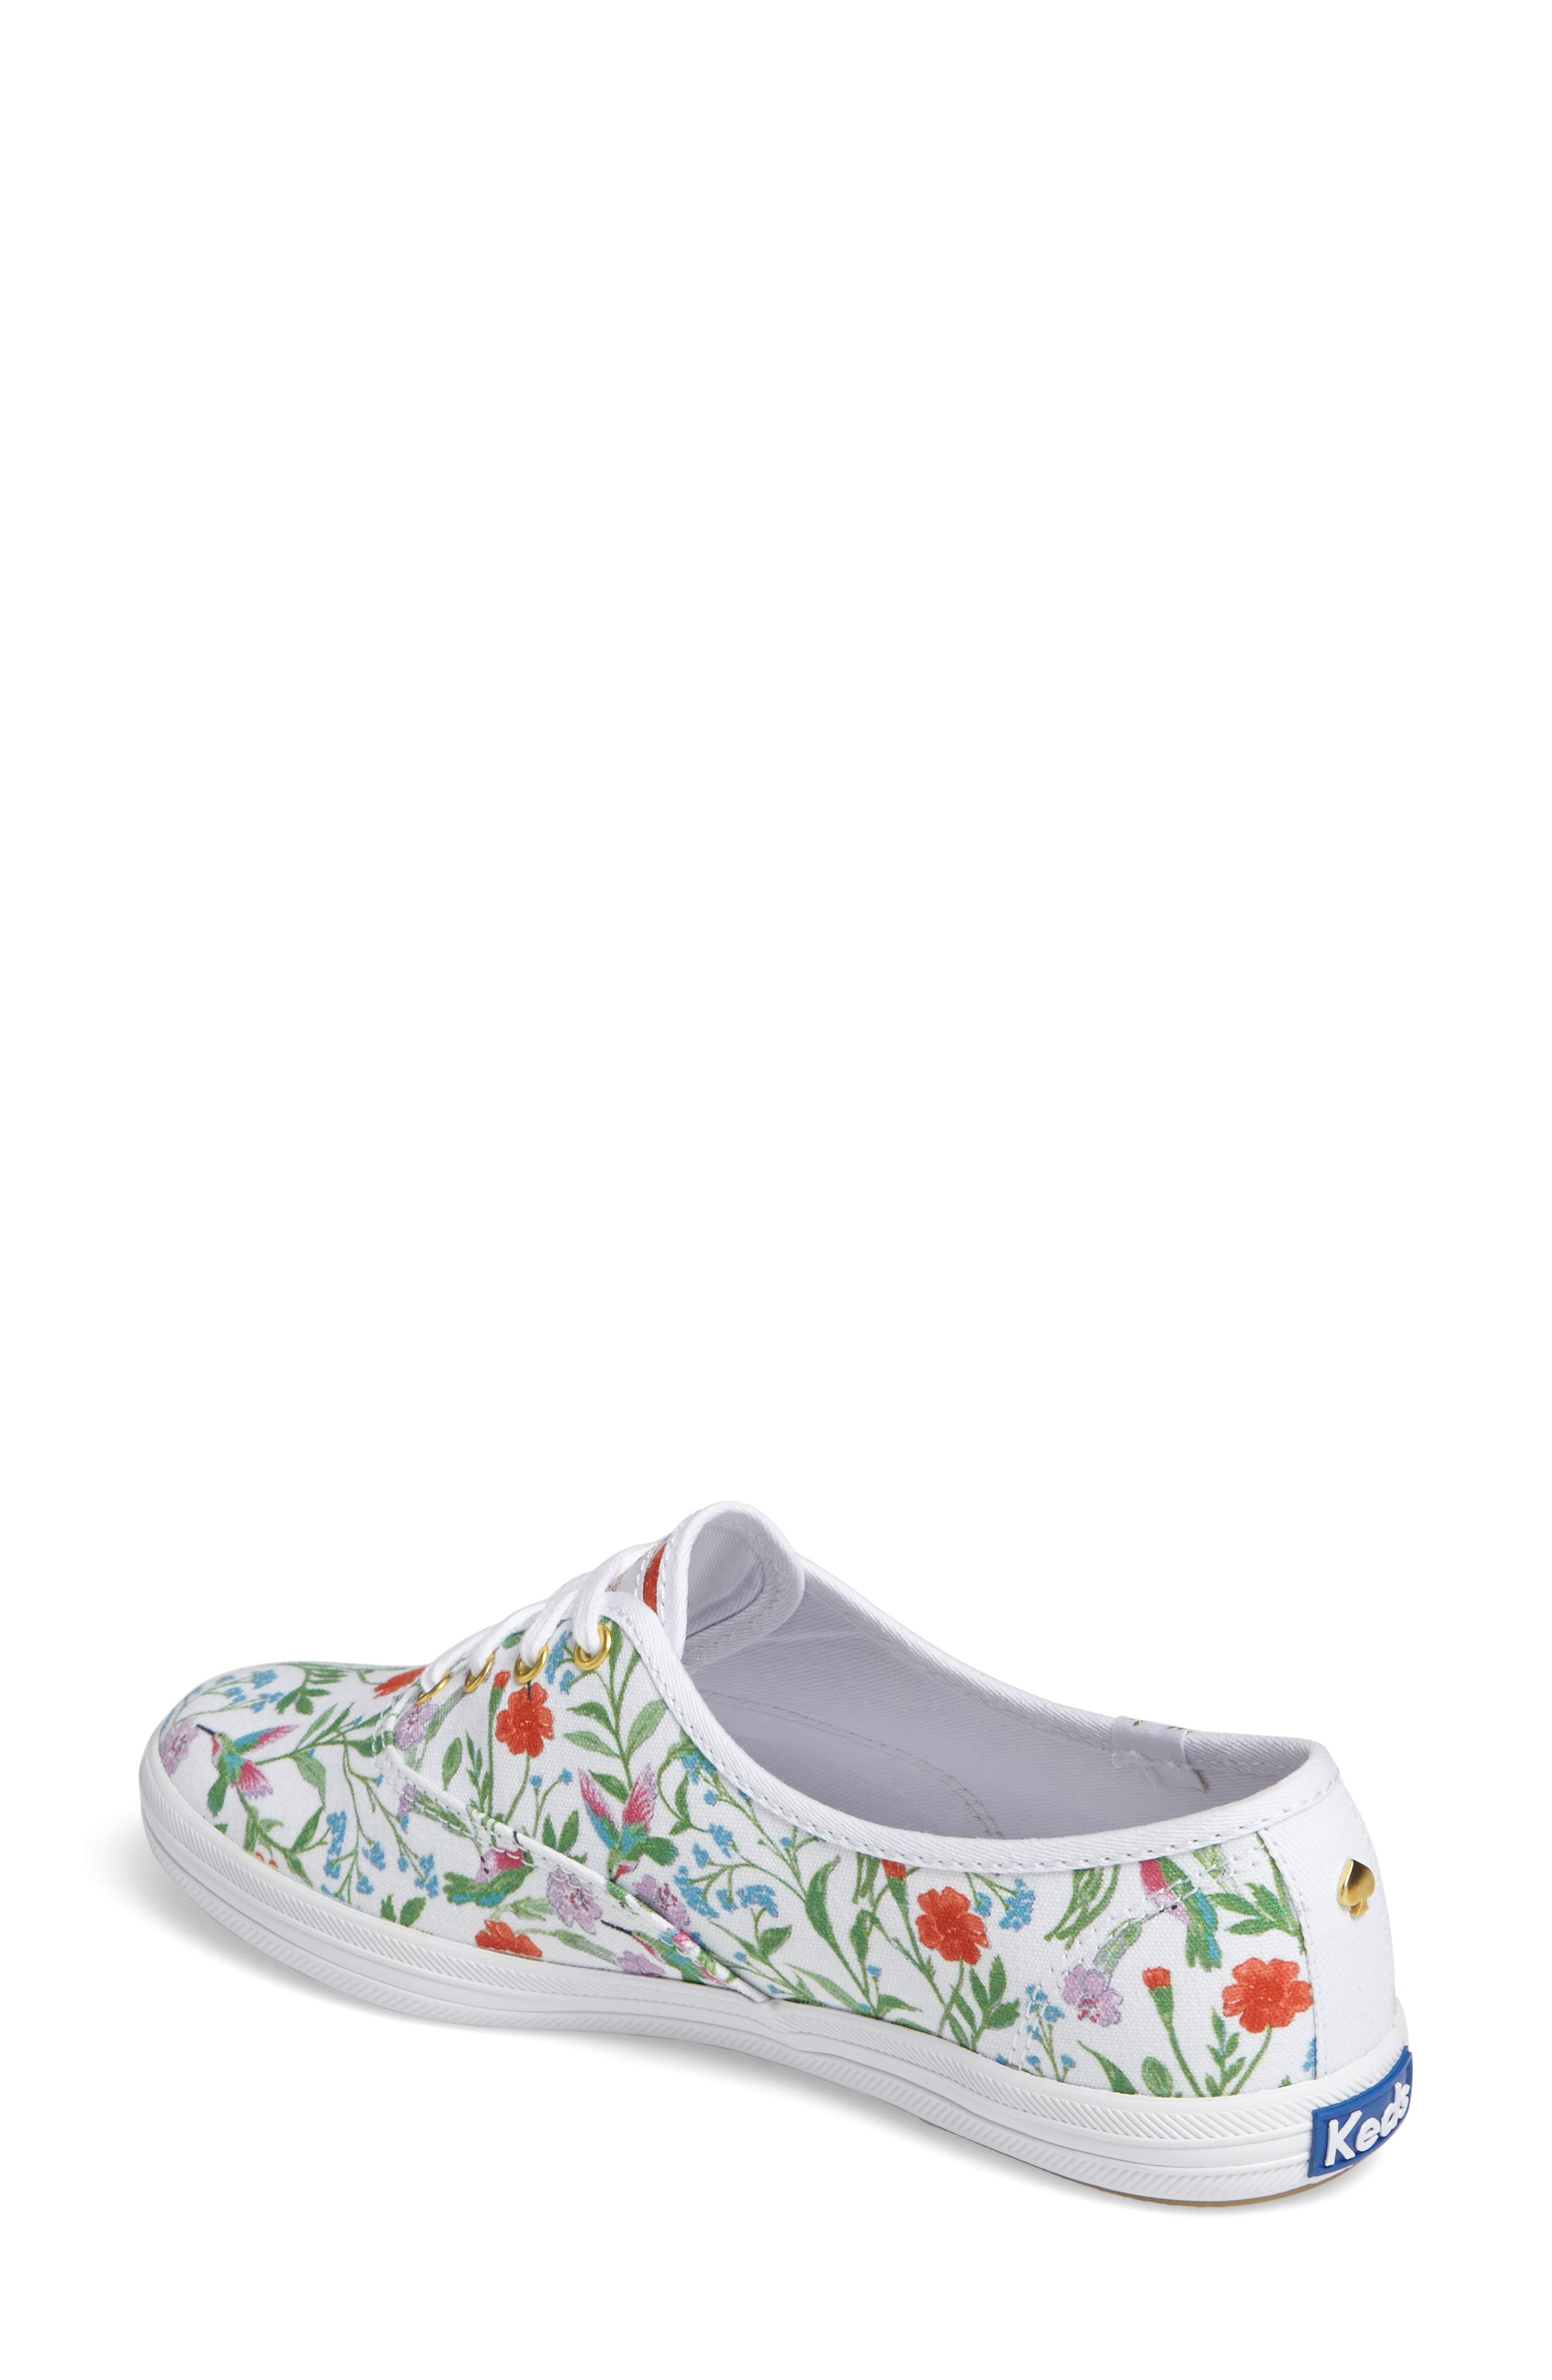 Keds<sup>®</sup> x kate spade new york champion sneaker,                             Alternate thumbnail 7, color,